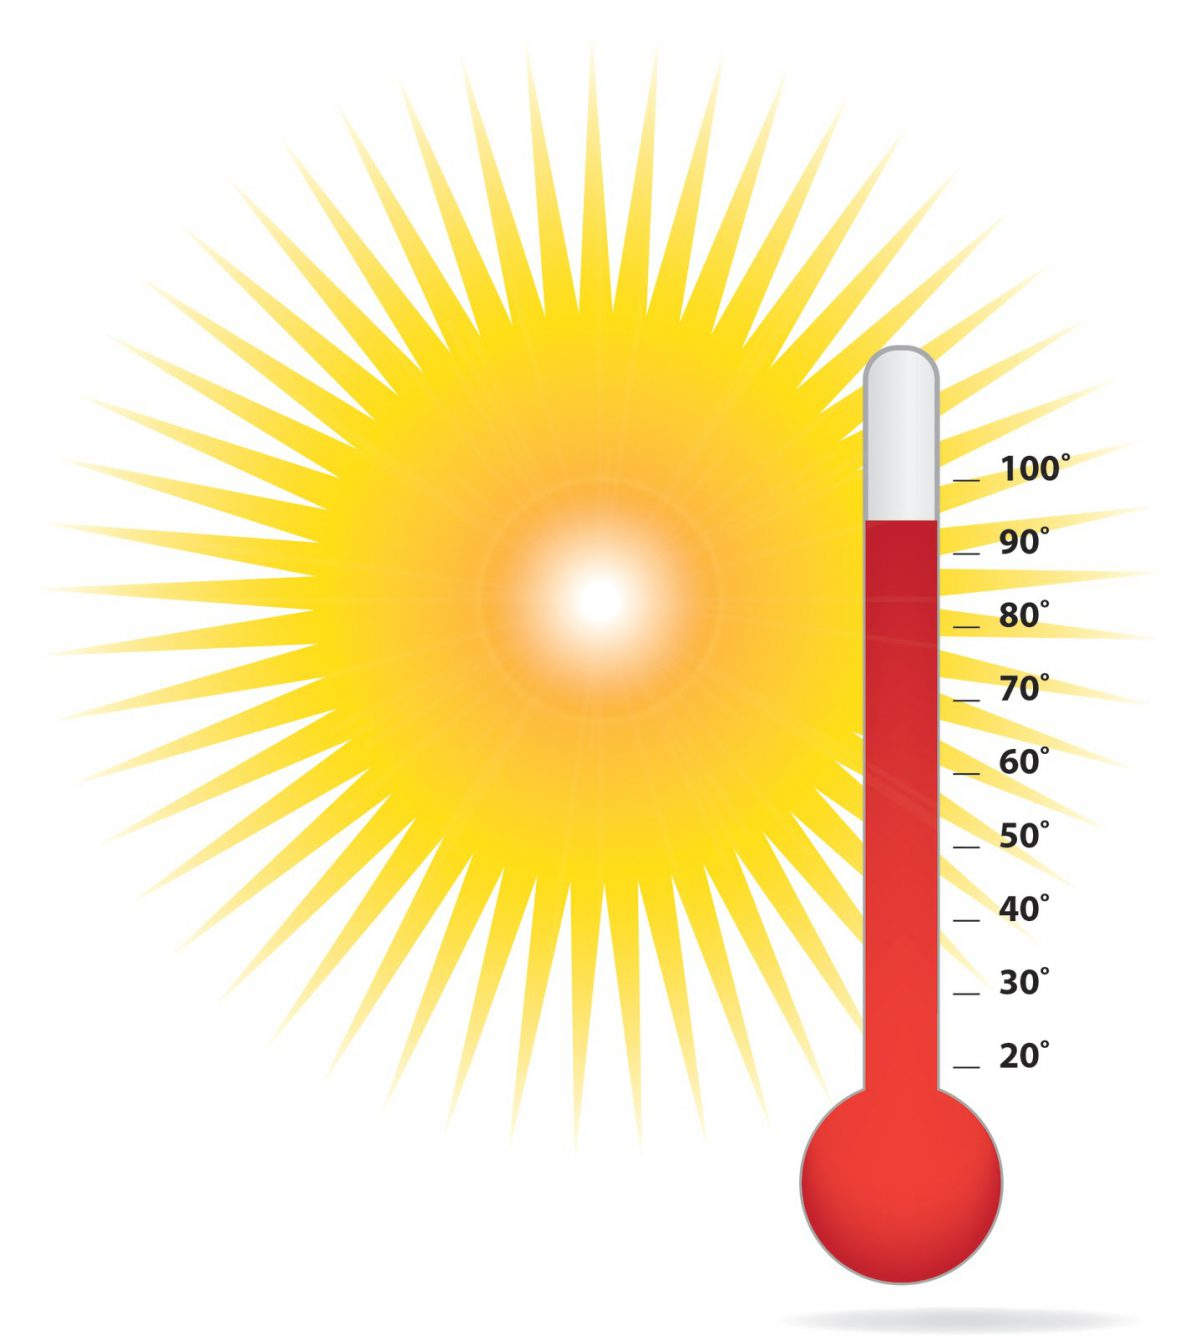 Thermometer-and-sun-heat-1200x1336.jpg